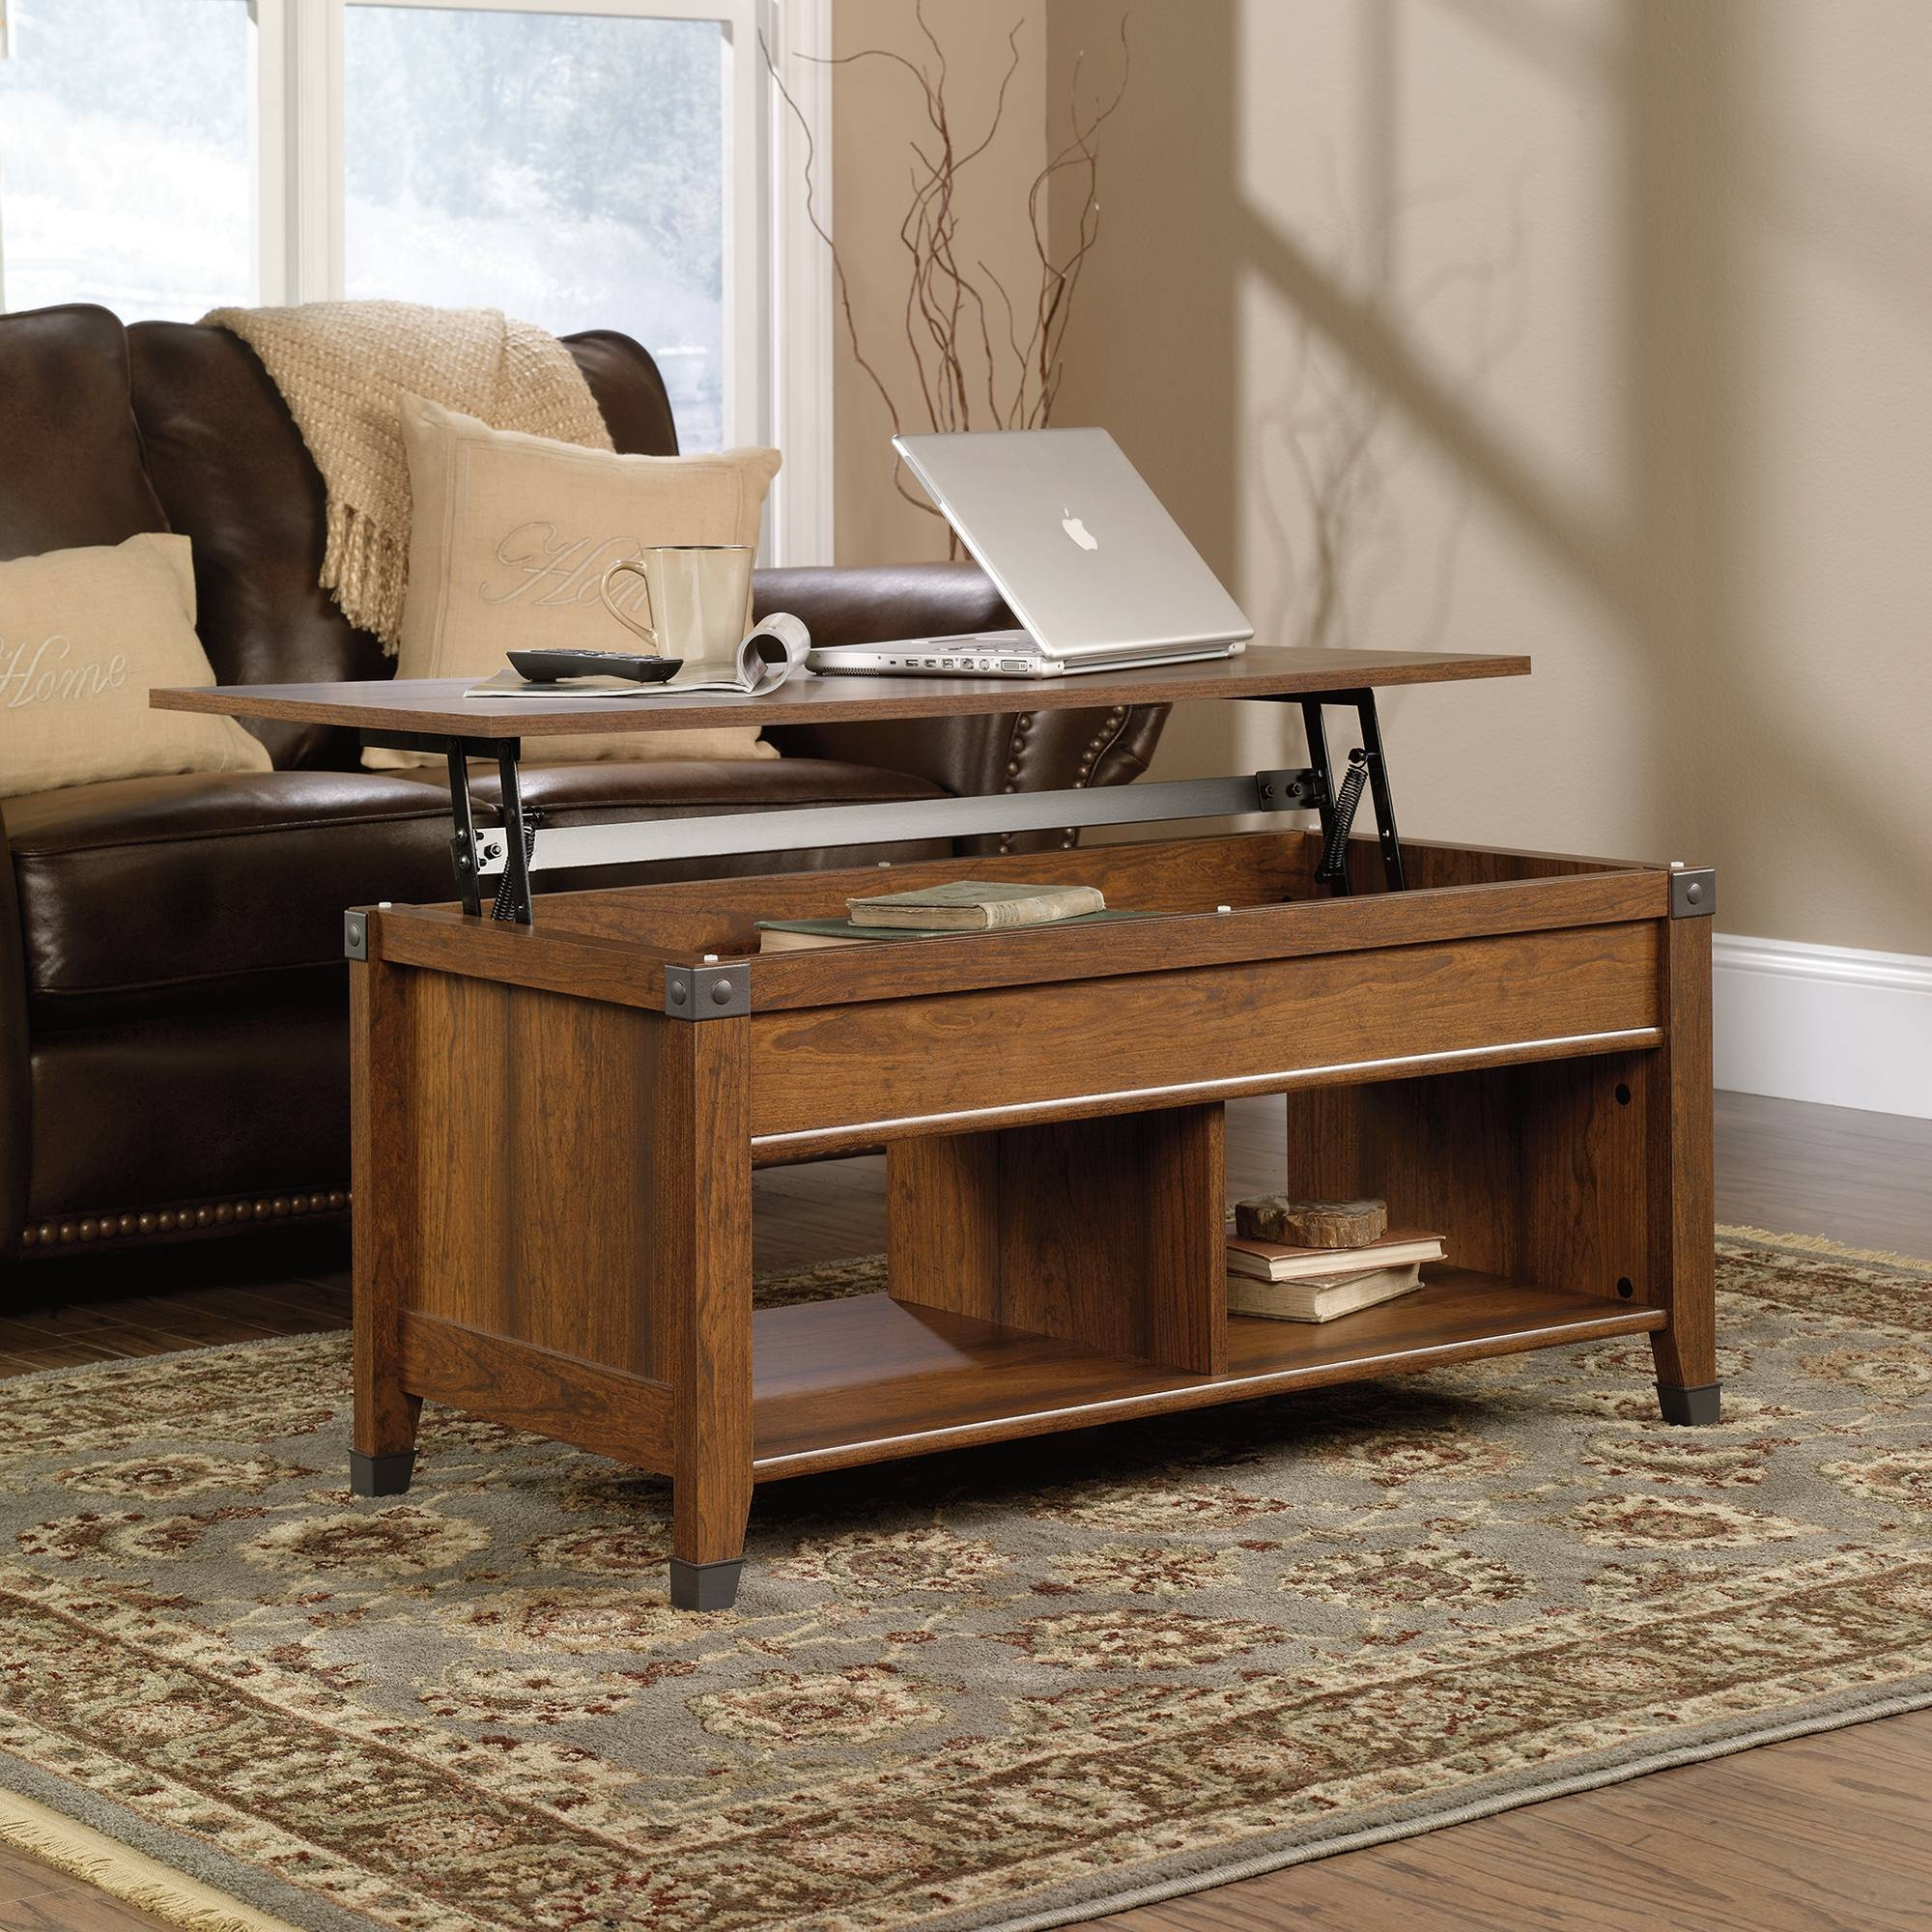 Carson Forge | Lift-Top Coffee Table | 414444 | Sauder within Coffee Tables With Lift Up Top (Image 7 of 30)